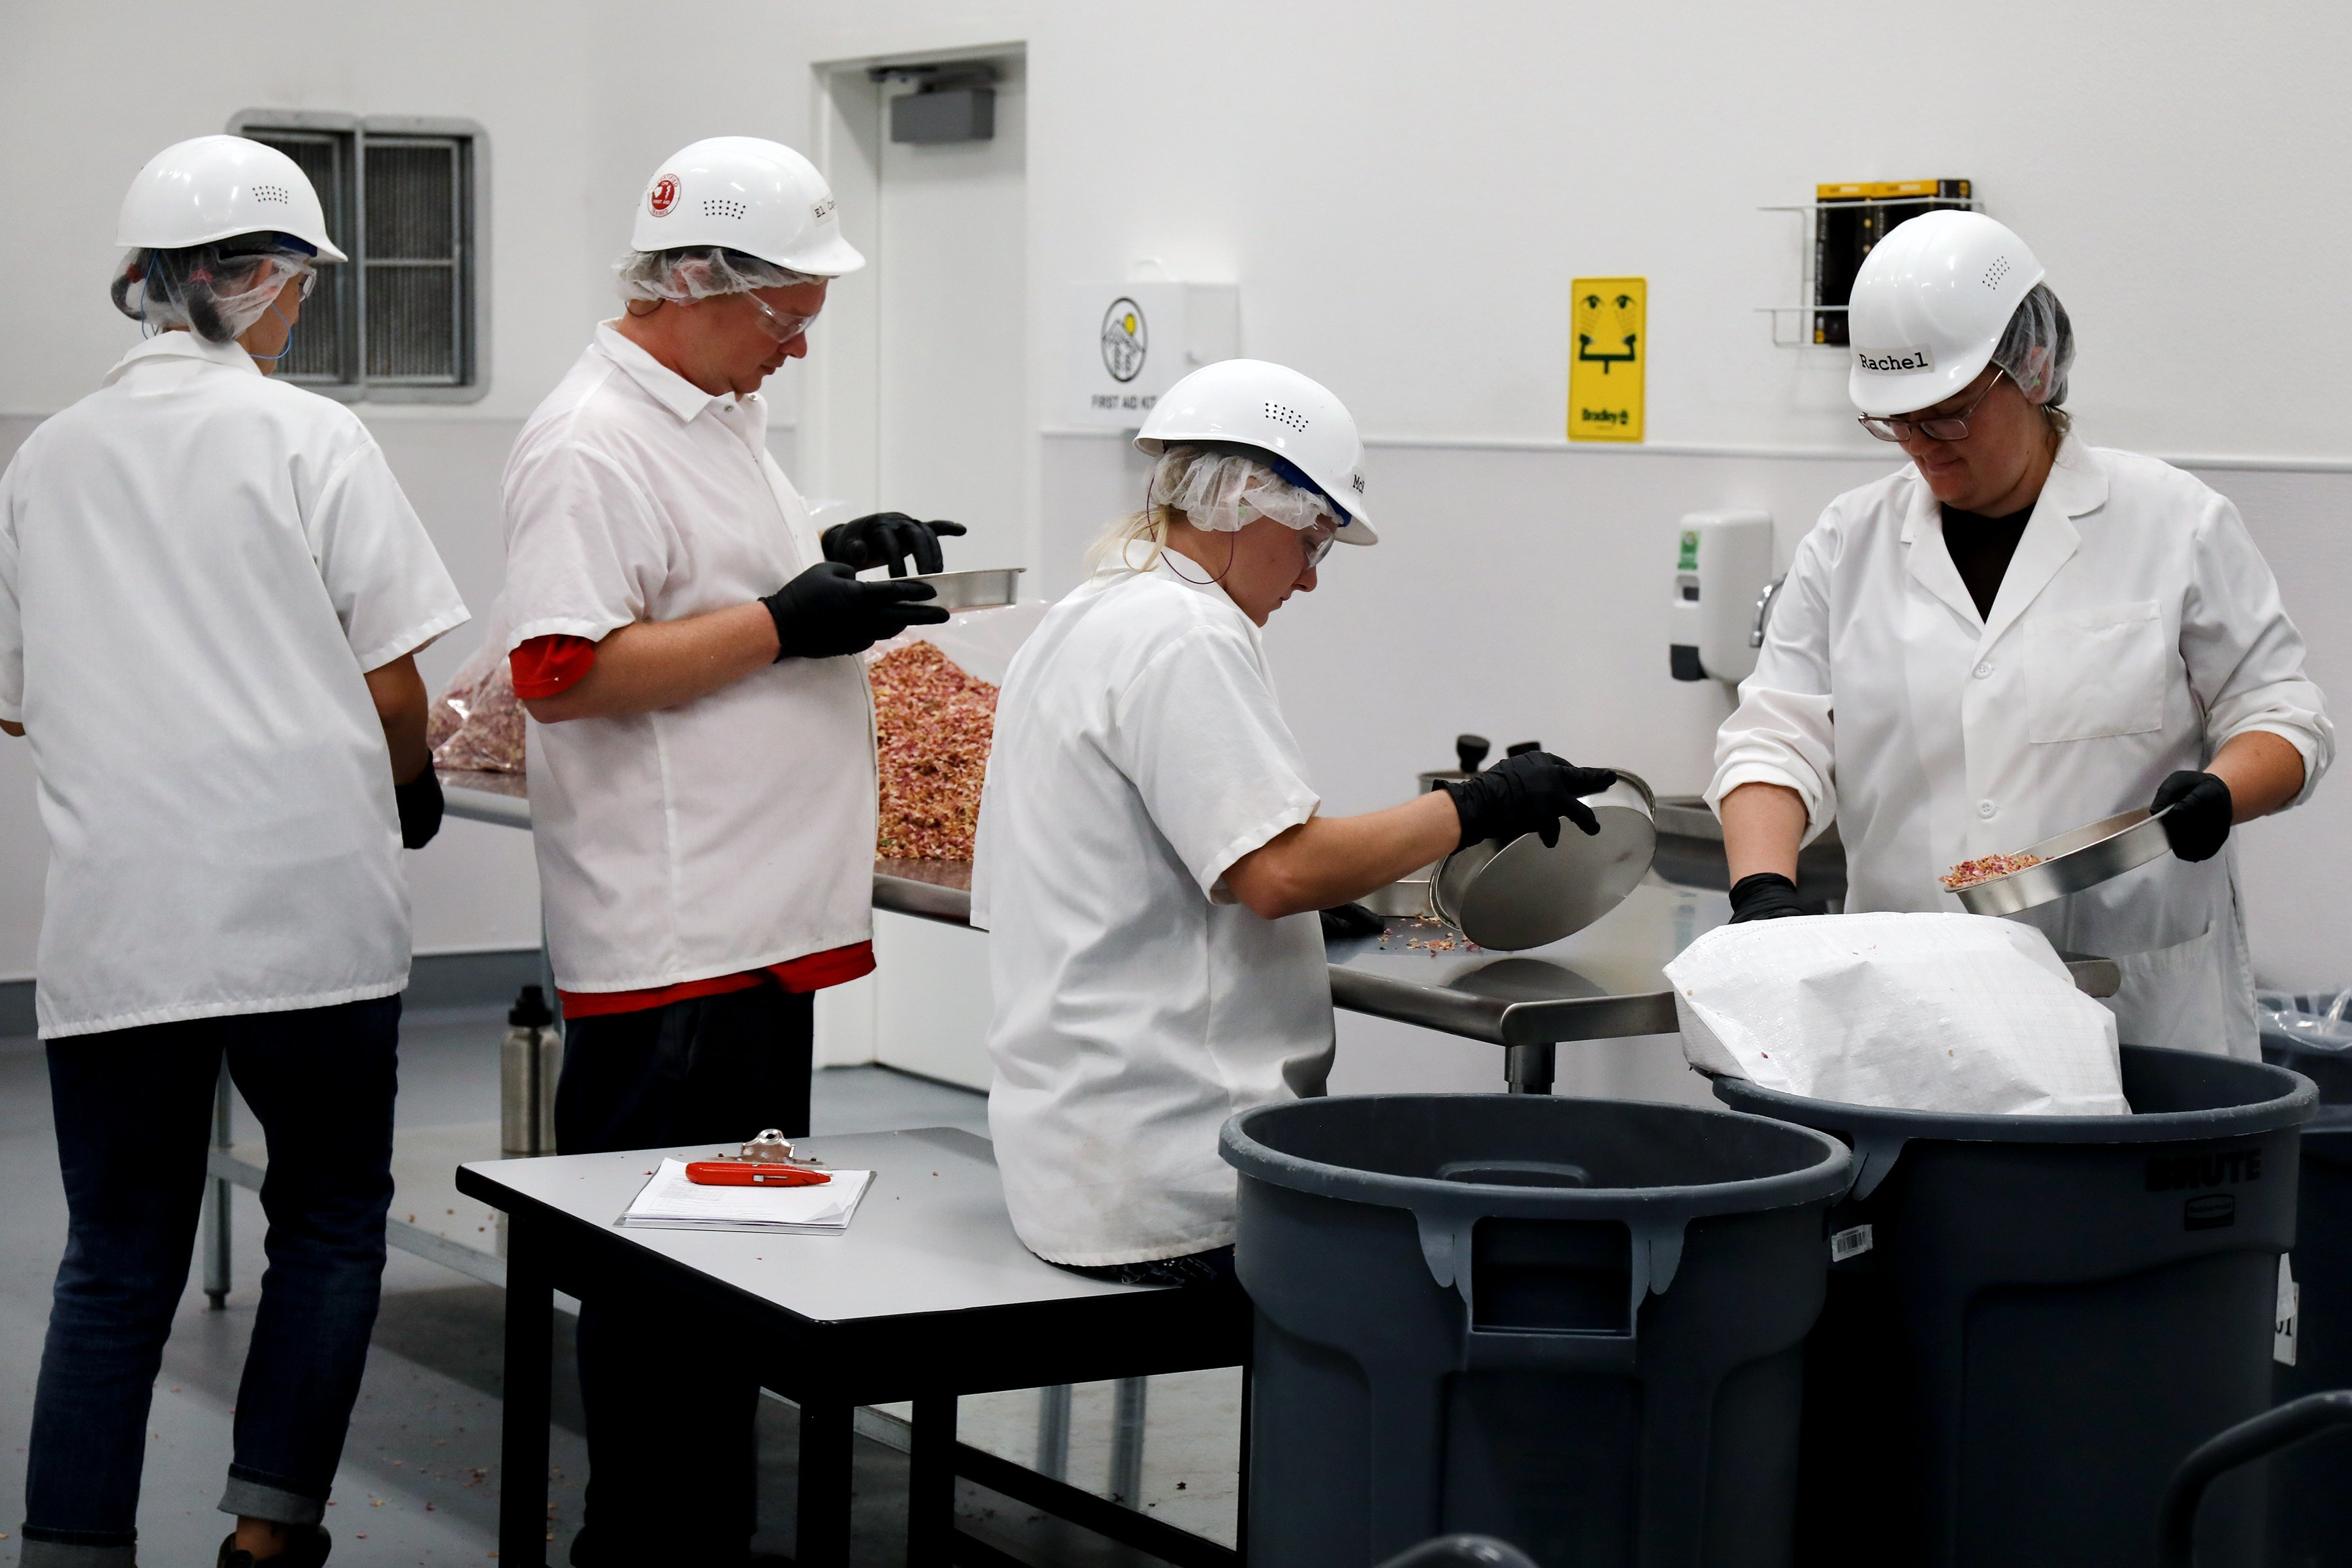 Workers handling herbs with hard hats on and lab coats.